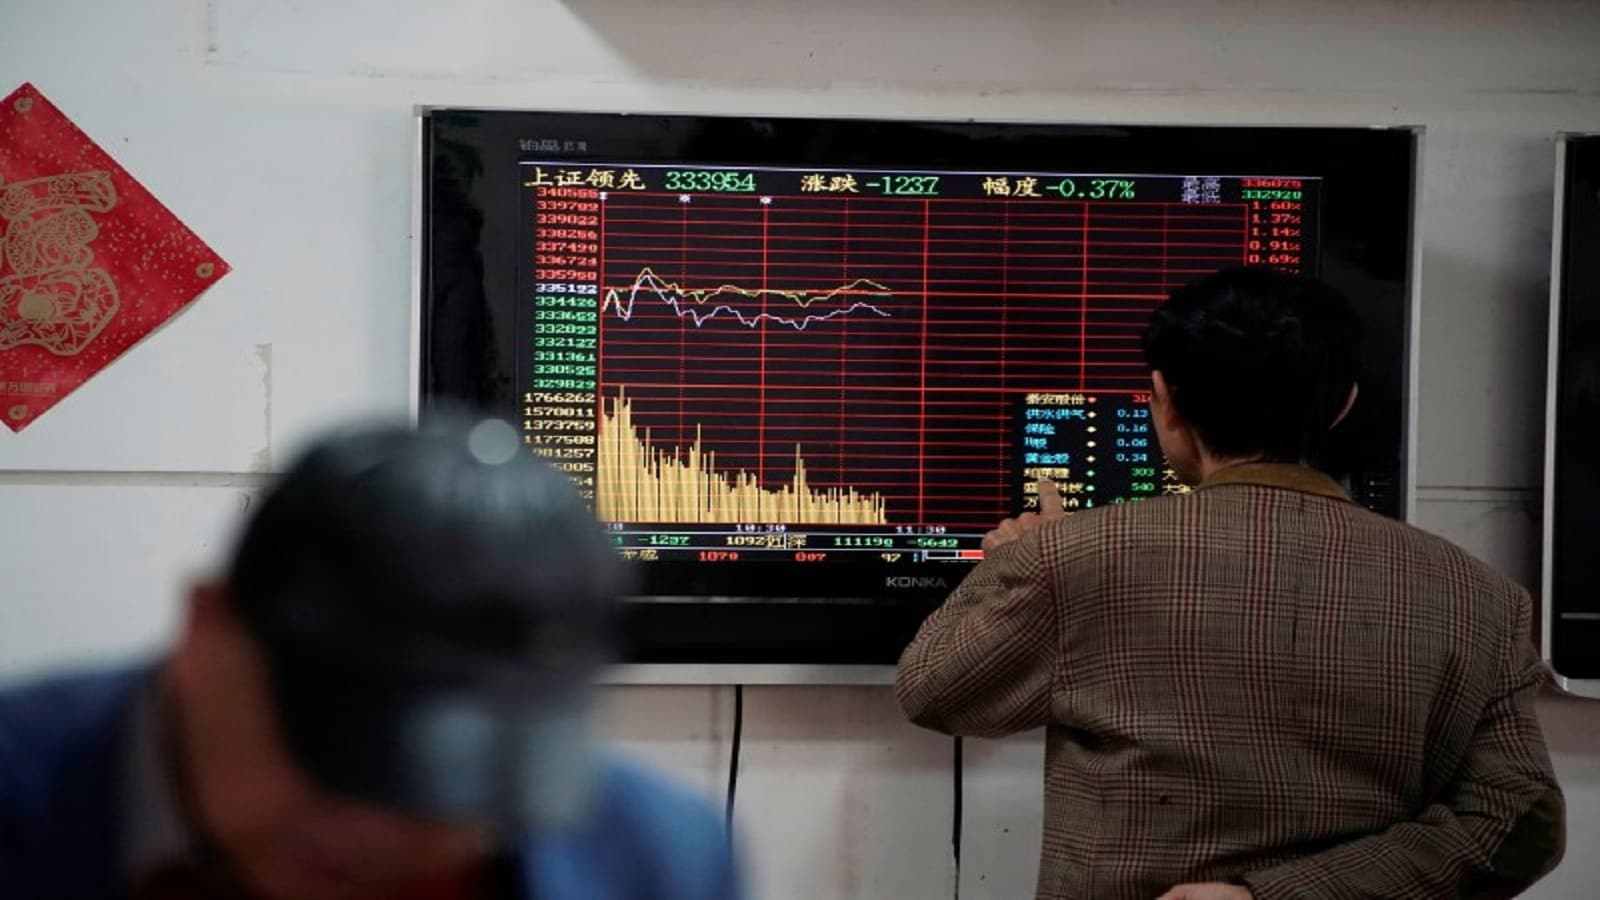 3. Markets At Close On Wednesday: The Indian equity market ended Tuesday's rangebound trade with minor gains as investors avoided big bets ahead of the three-day Reserve Bank of India's Monetary Policy Committee meeting outcome. The 50-share broader Nifty closed 22 points higher at 10,934, while the Sensex added 34 points to settle at 36,616.81. Benchmark indices closed higher for a fourth straight session. (Image: Reuters)